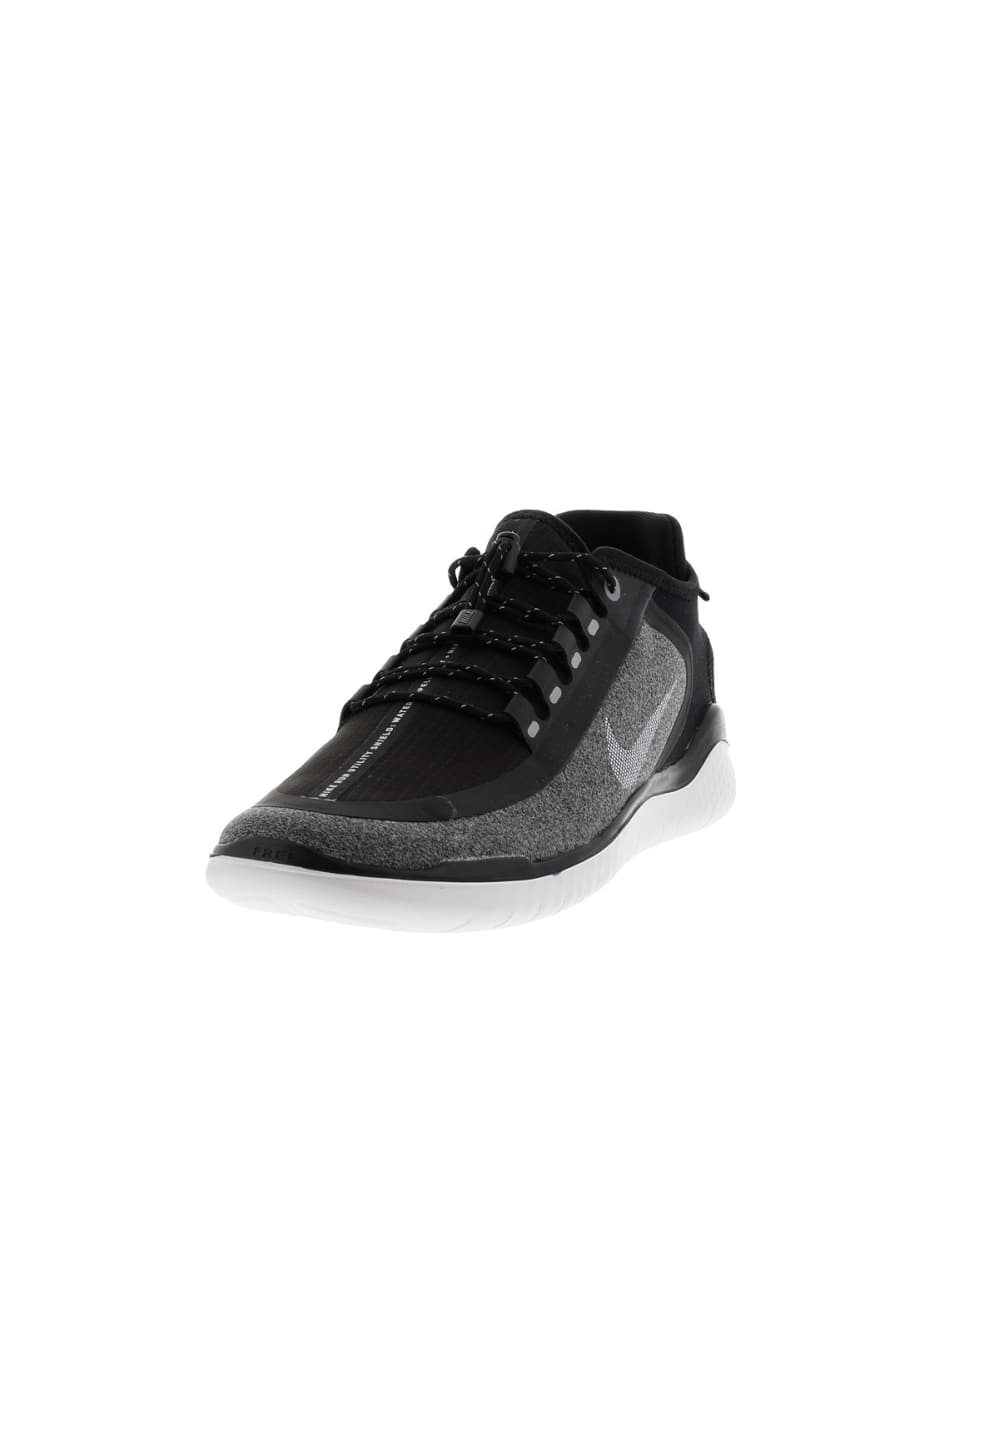 wholesale dealer c3030 70a69 Next. -60%. This product is currently out of stock. Nike. Free Rn 2018  Shield - Running shoes for Men